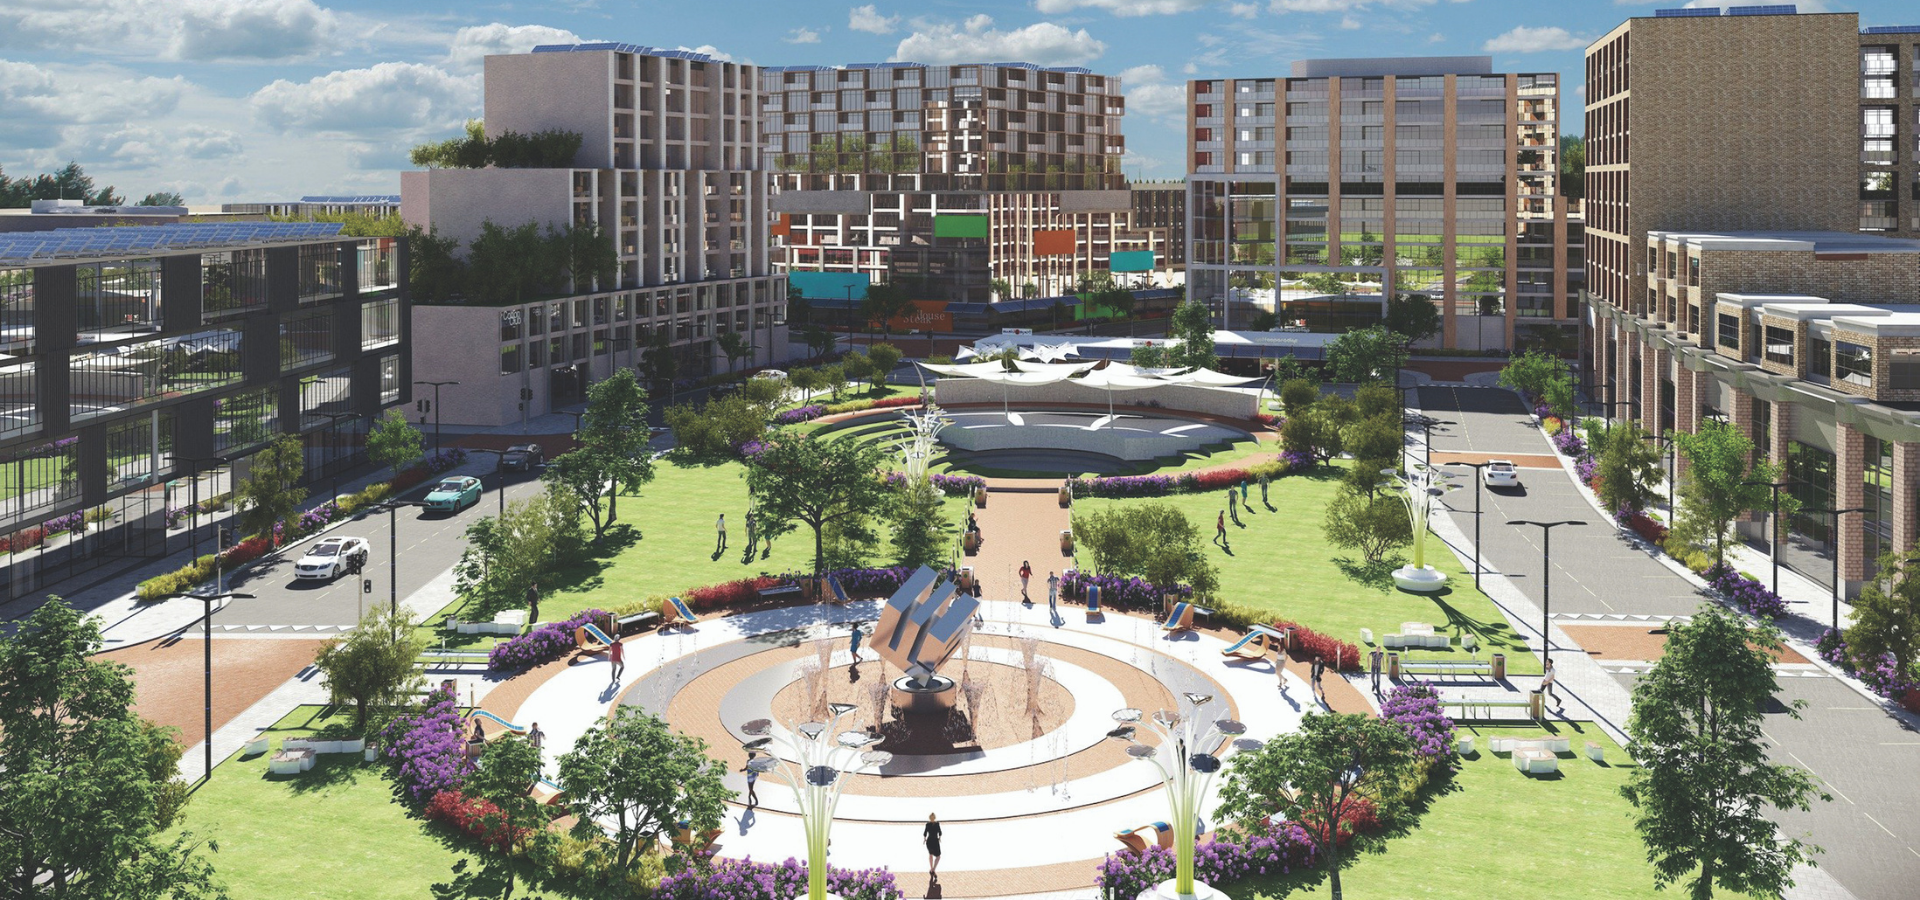 Rendering of the West 5 community.